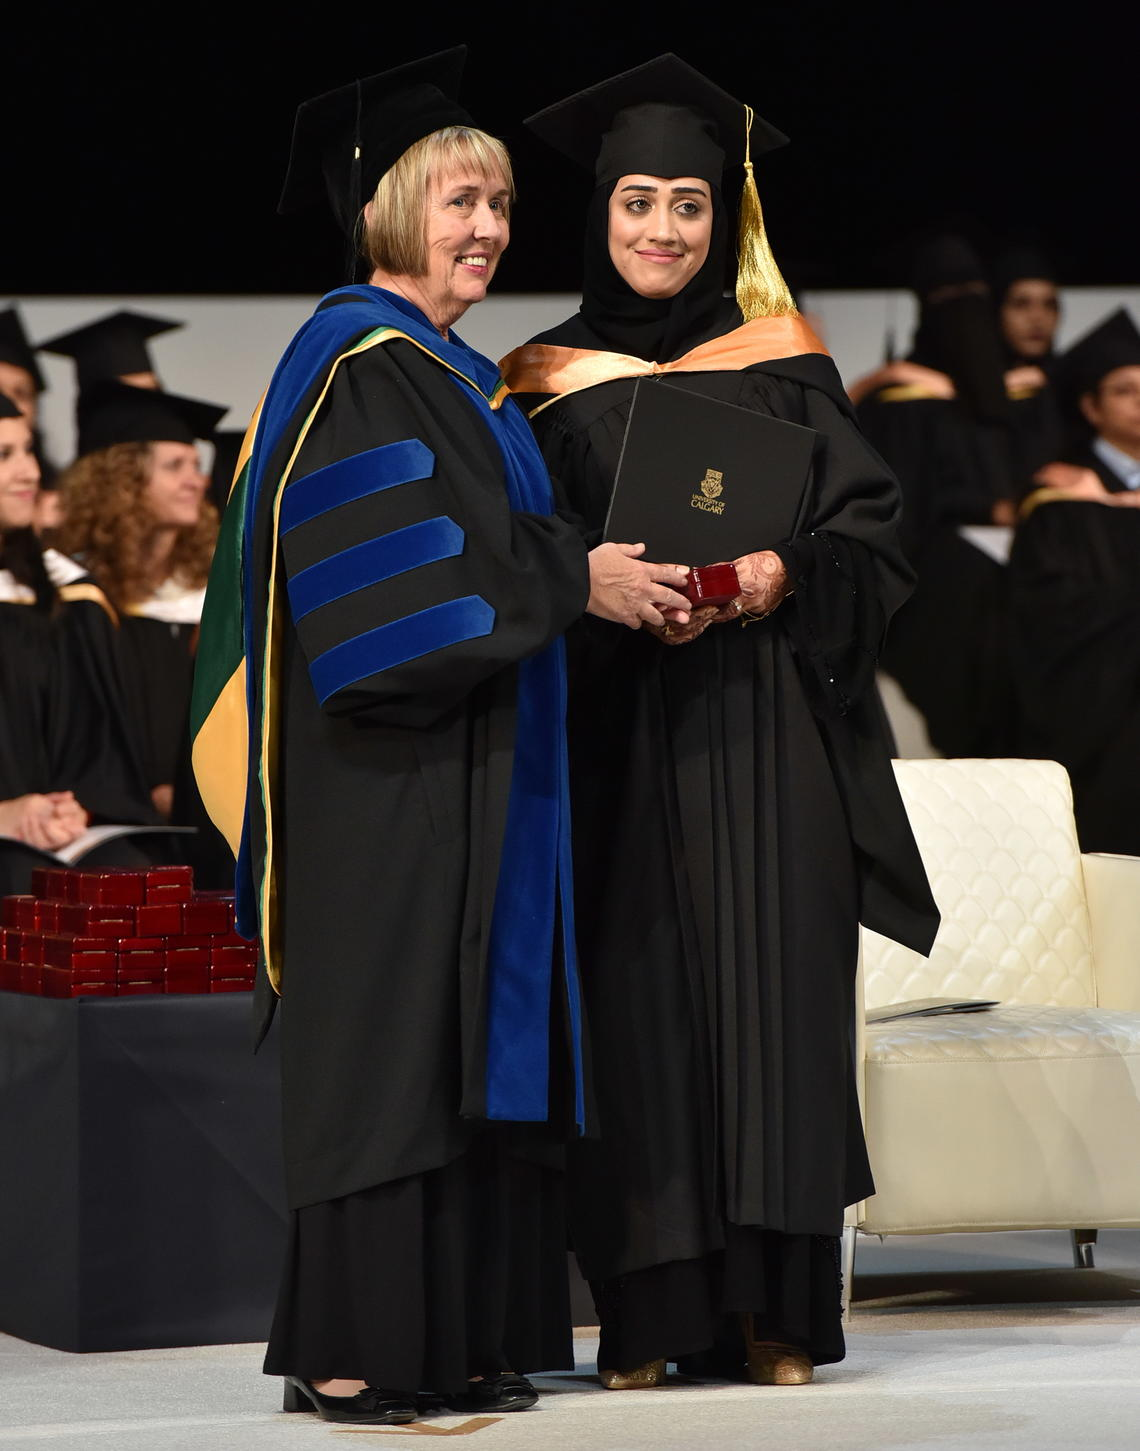 Dean Deborah White with a graduating student at the May 13 convocation ceremonies in Qatar.